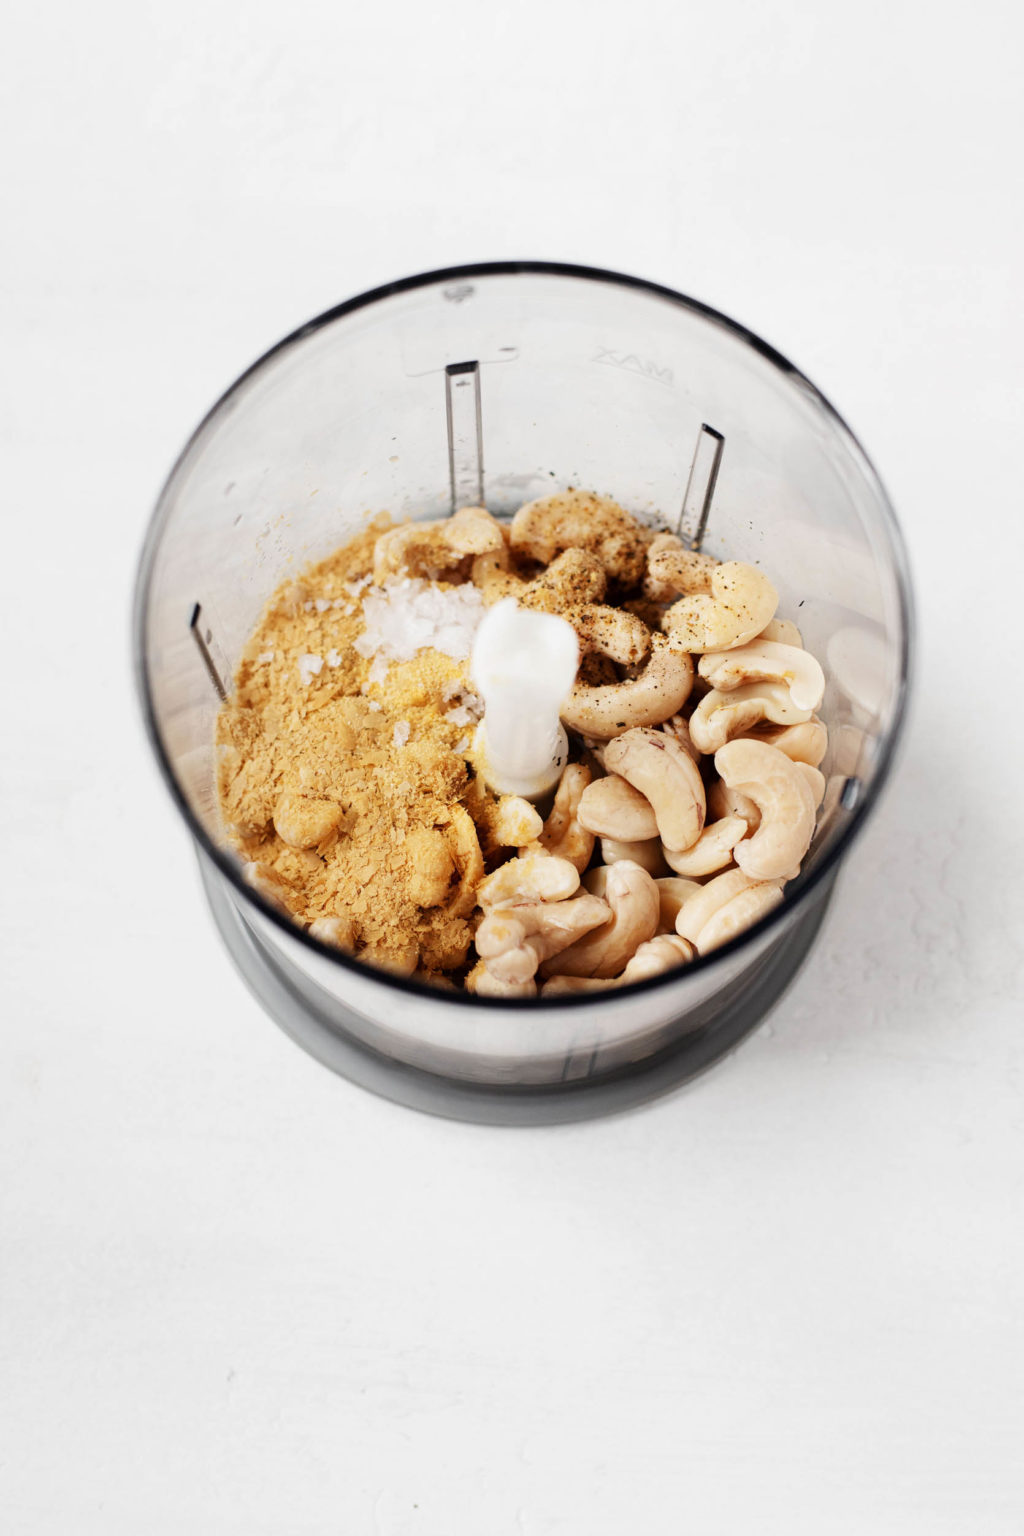 A food processor is full of raw cashews, nutritional yeast, and salt, ready for blending.